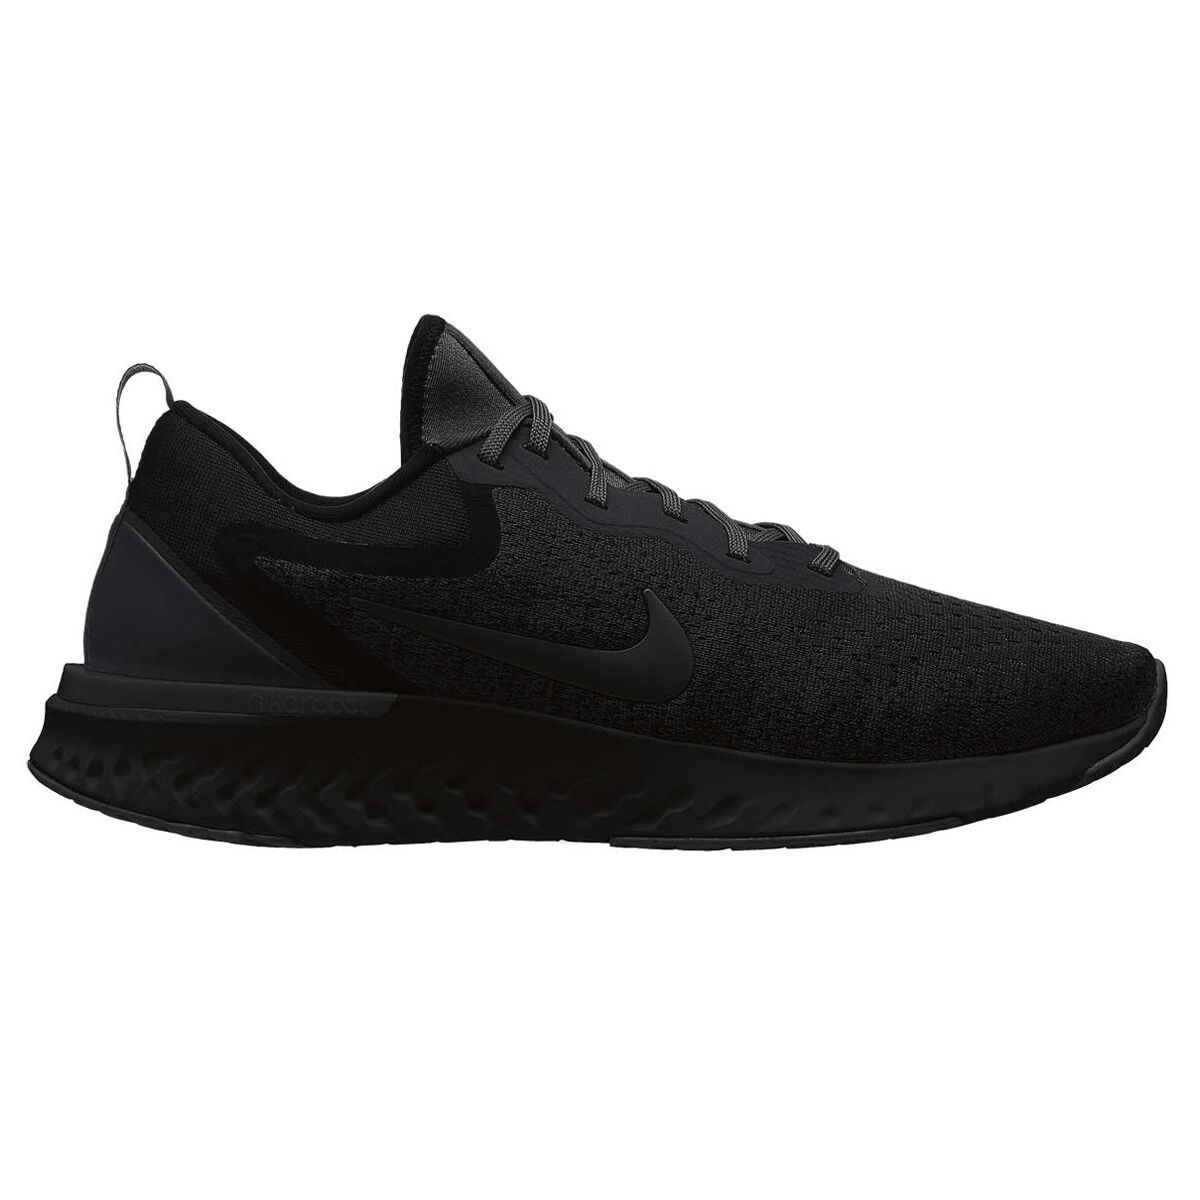 7 Us Nike Running Sport Black Shoes Rebel Mens Odyssey React PPqgSwa